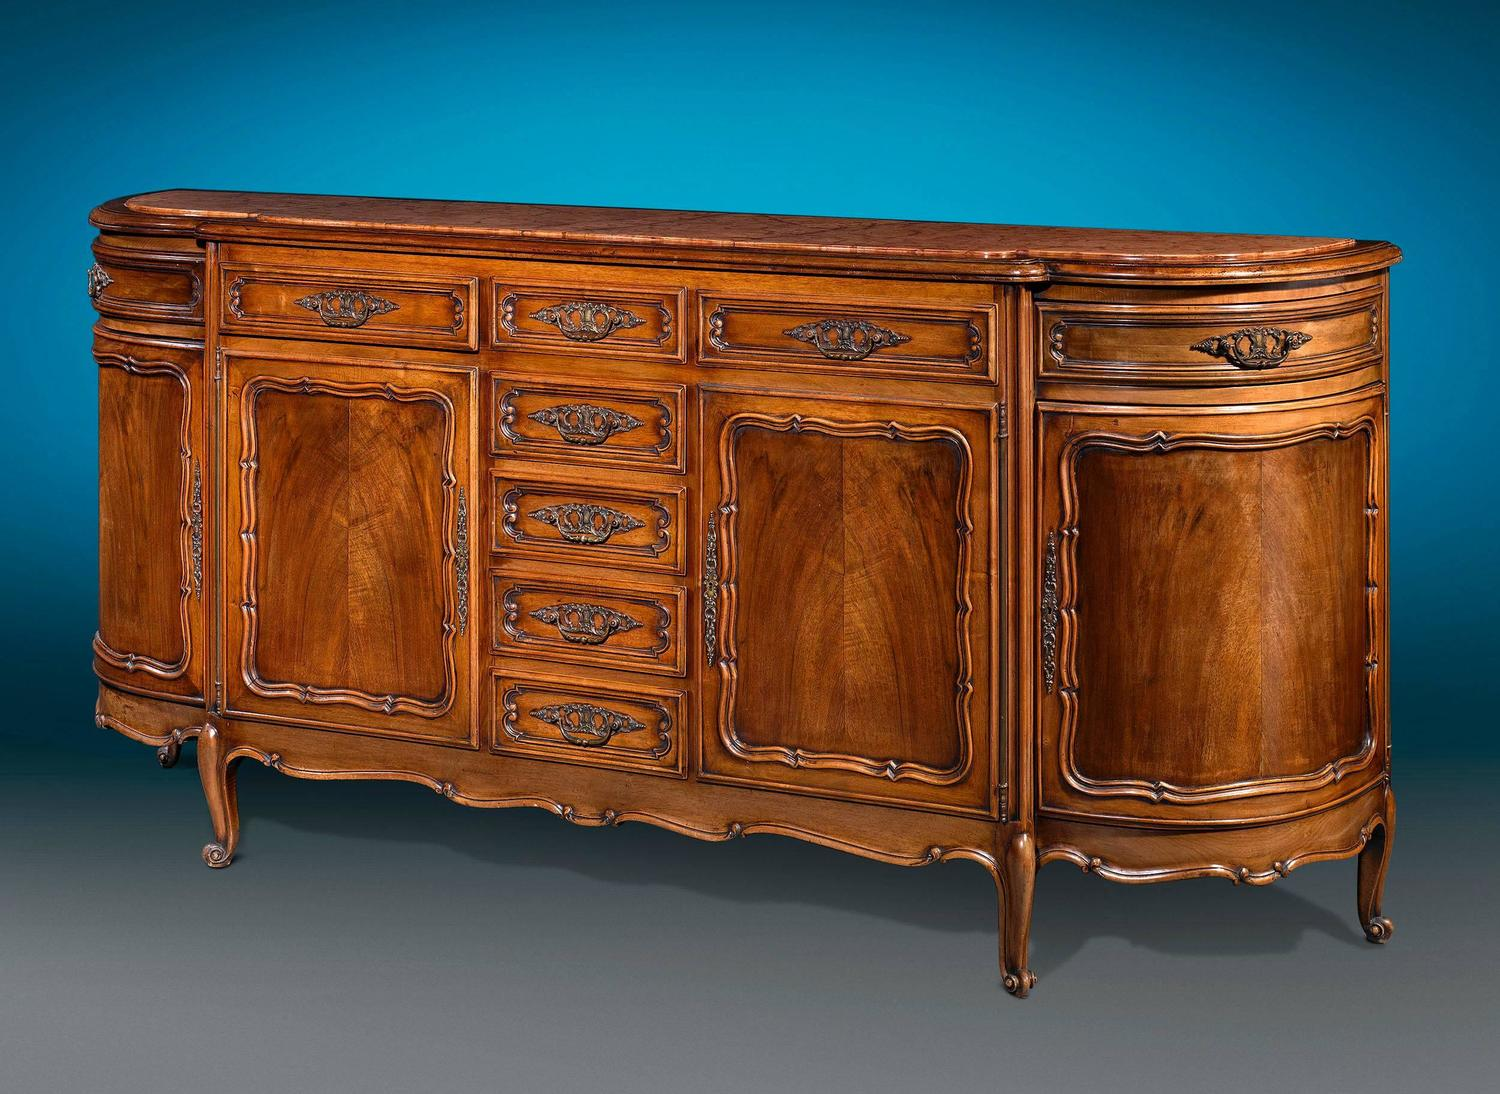 Red Marble Top : French provincial red marble top buffet for sale at stdibs